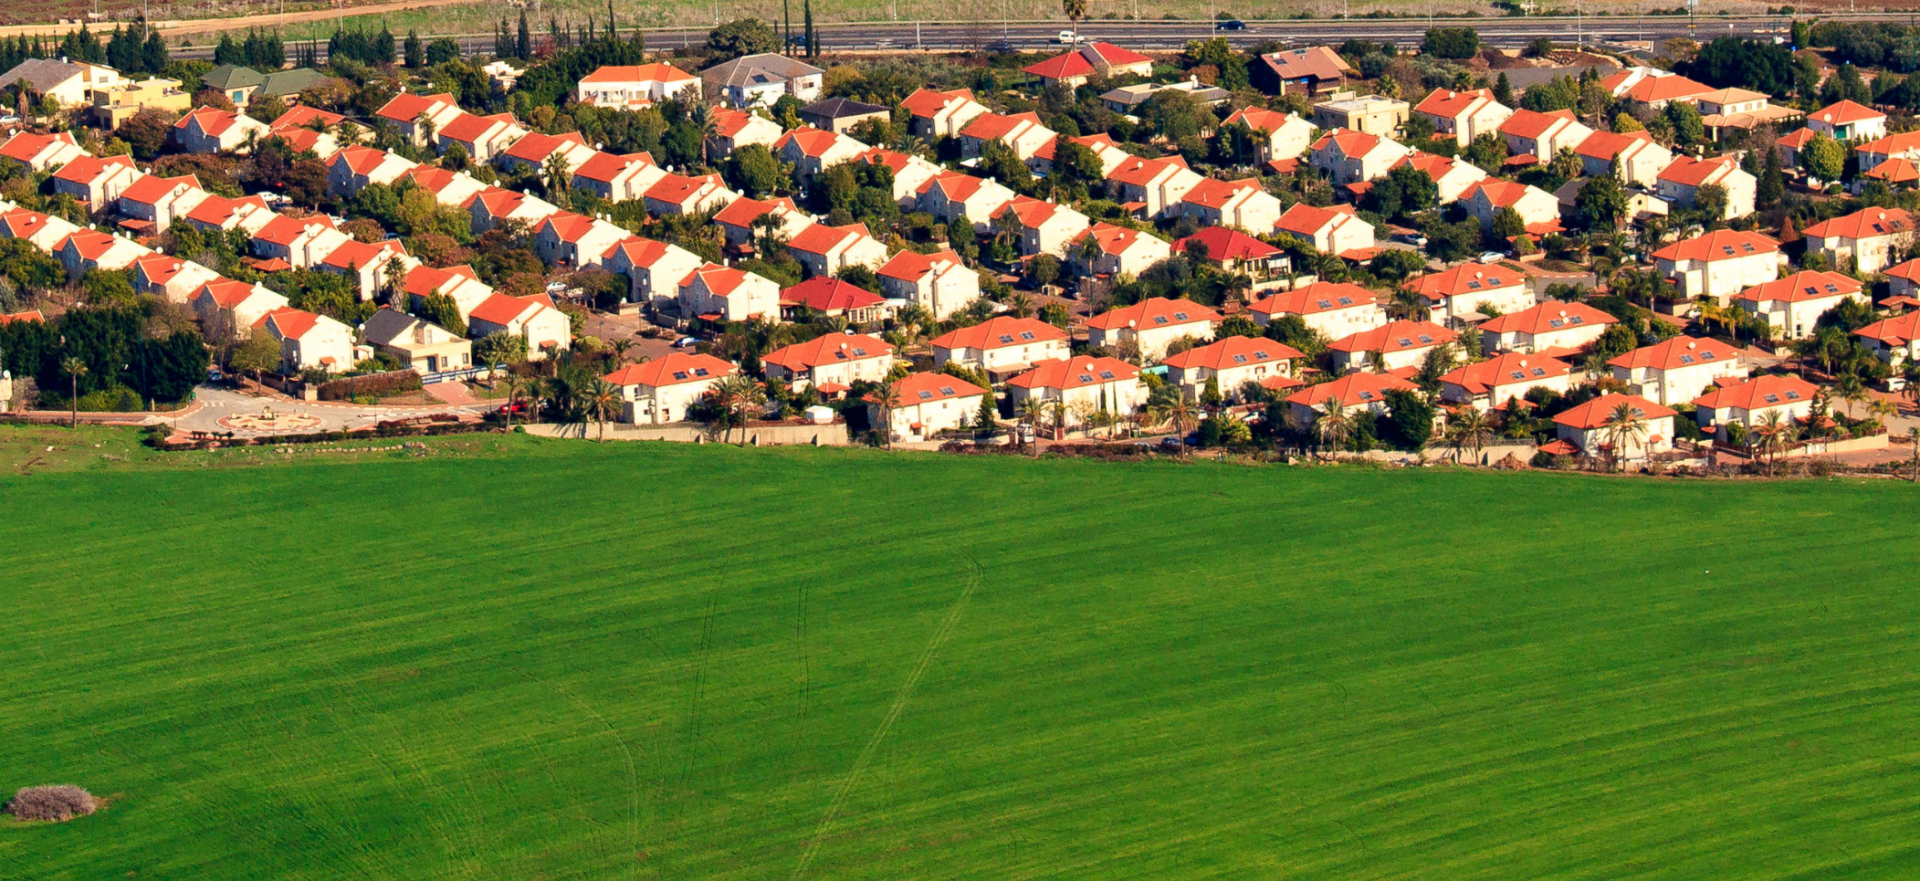 A feild next to houses